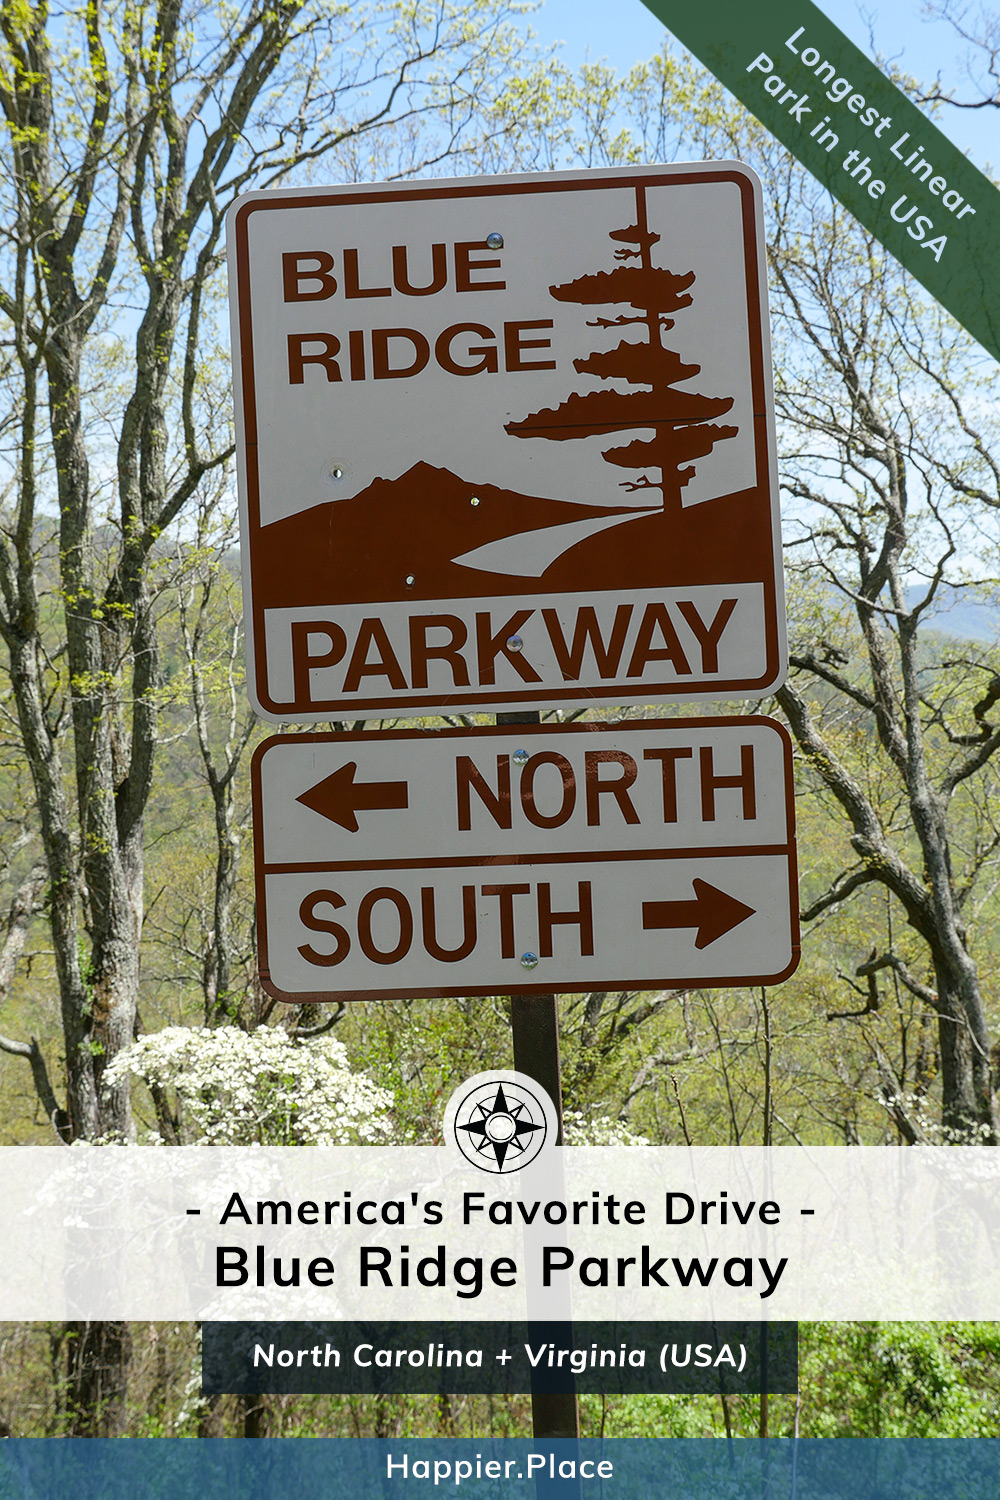 Blue Ridge Parkway: America\'s Favorite Drive and Longest Linear Park in the USA from Virginia to North Carolina. #HappierPlace #BlueRidgeParkway #NorthCarolina #Virginia #USA #FindYourPark #travel #travelguide #NationalPark